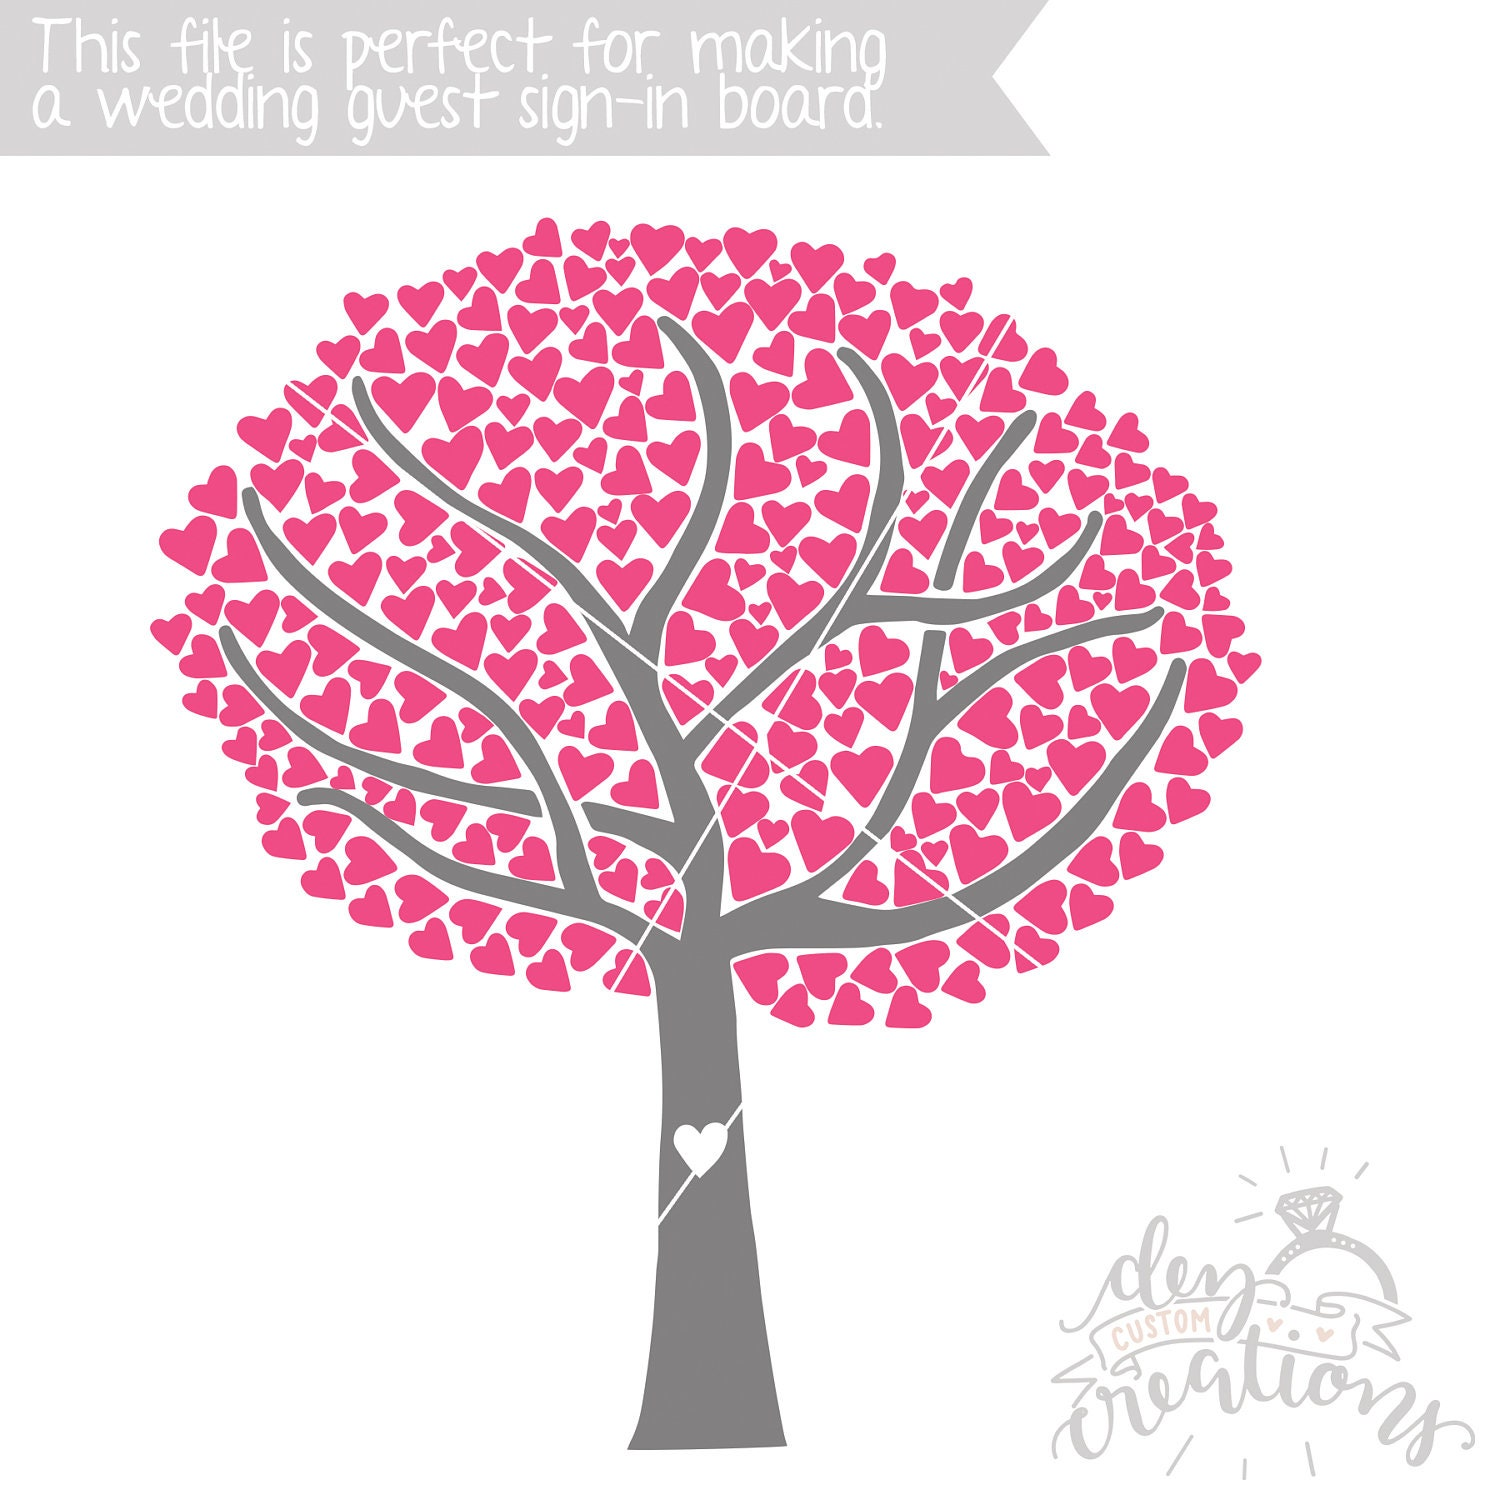 Tree SVG Tree with Heart Leaves Cut File Wedding Guest   Etsy